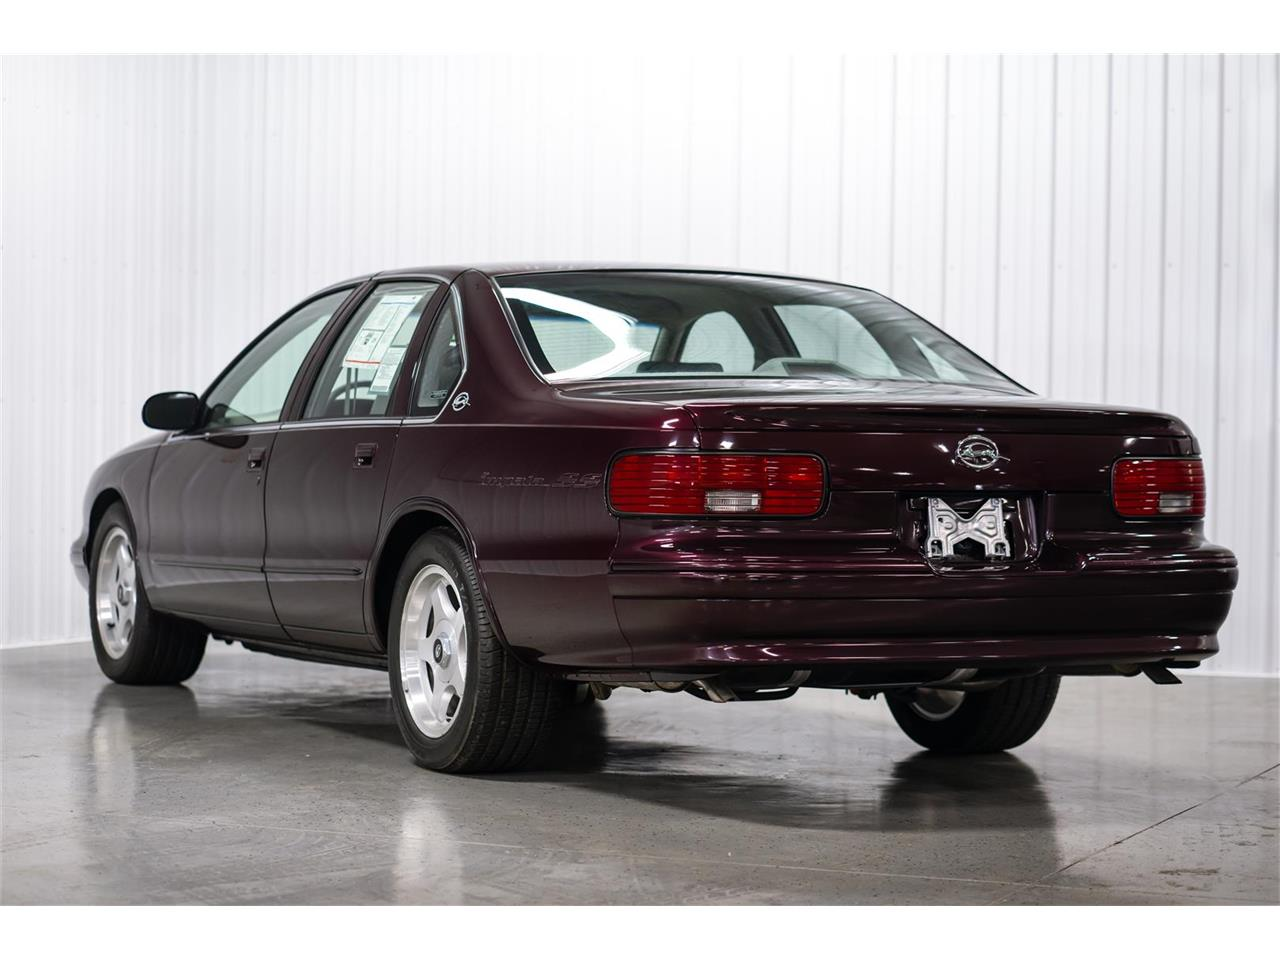 Large Picture of 1996 Chevrolet Impala SS - $24,900.00 - QDDS